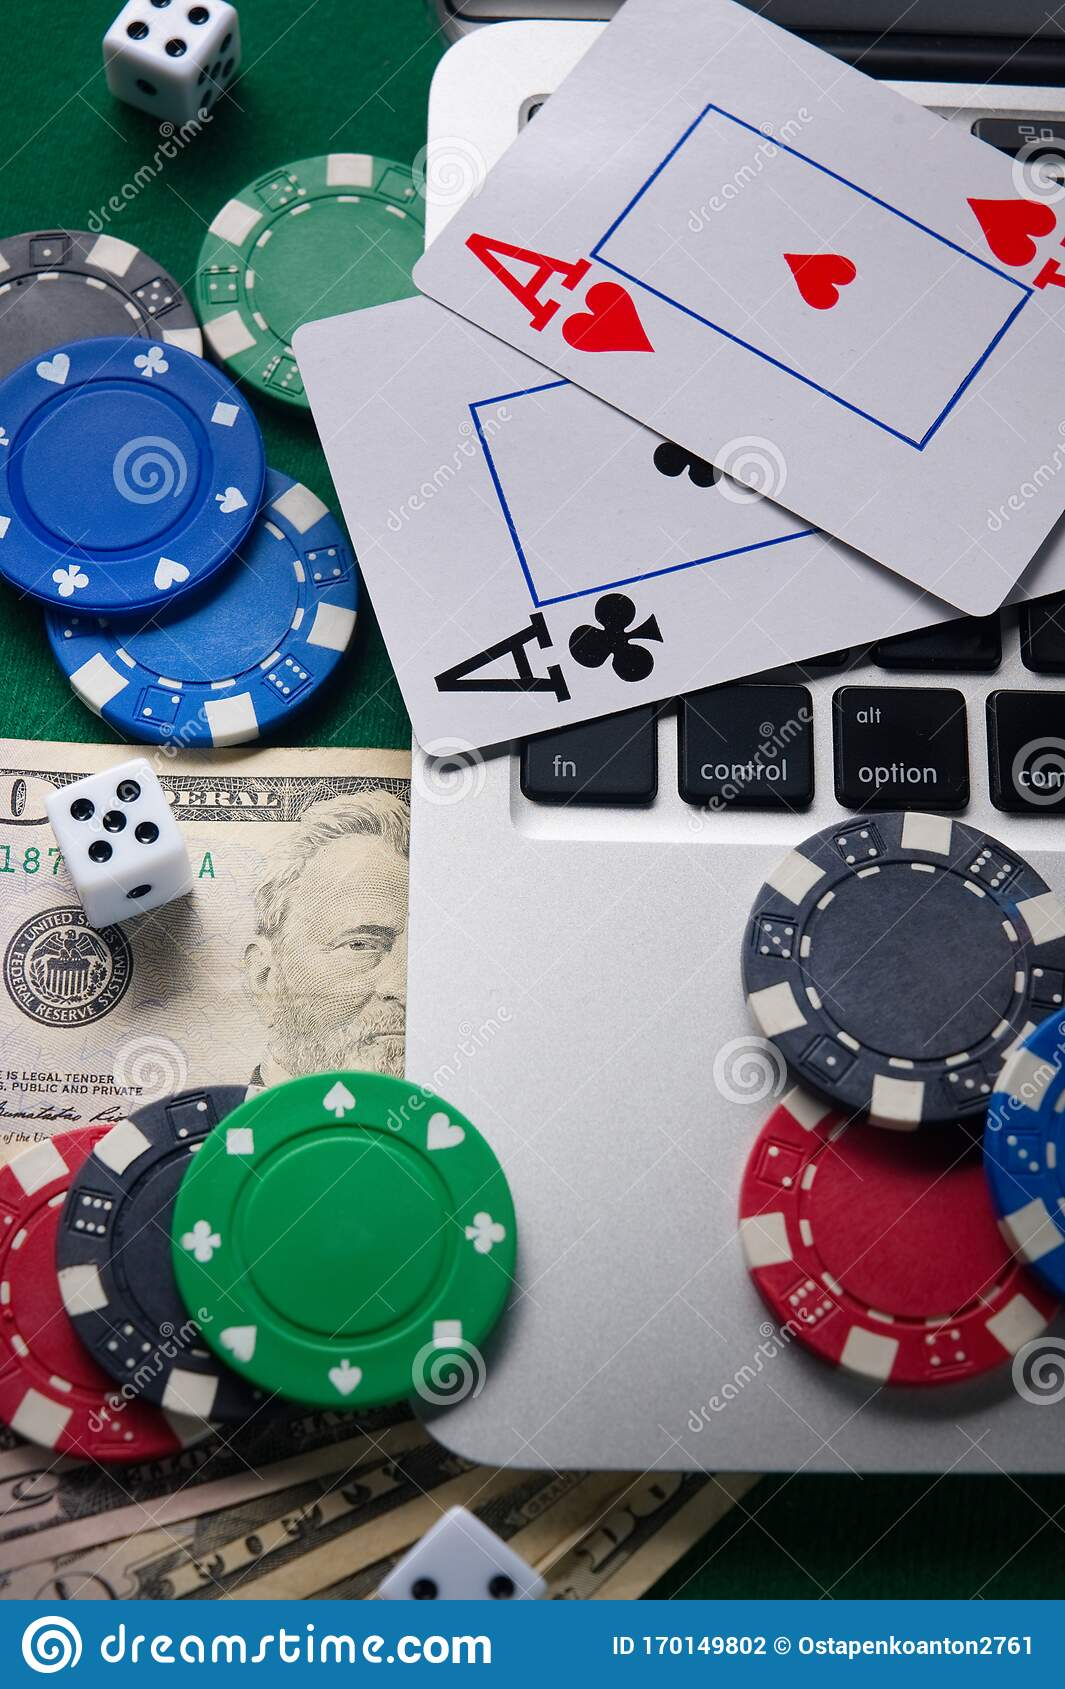 Business services gambling casino - mississippi